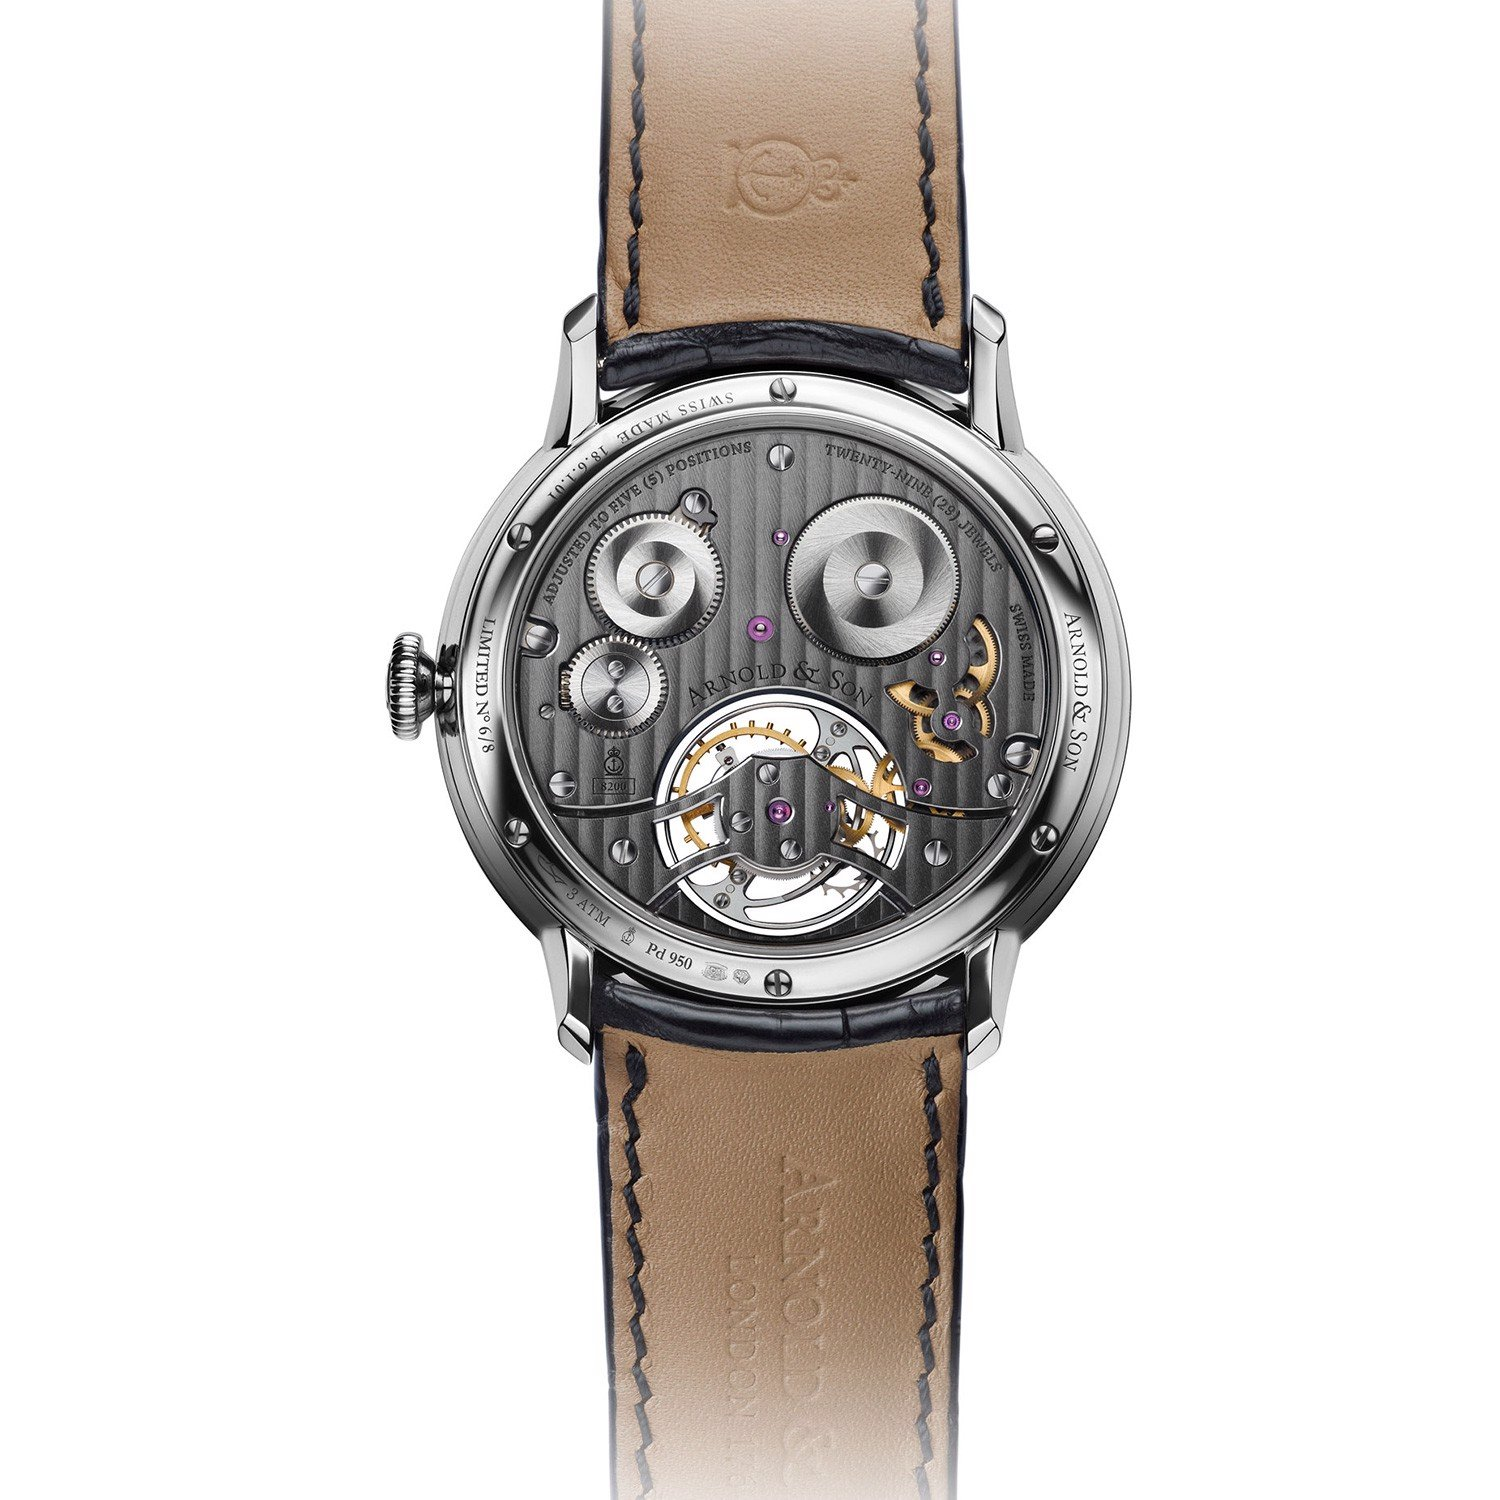 Arnold & Son Instrument UTTE Tourbillon Palladium Grey Pattern Dial